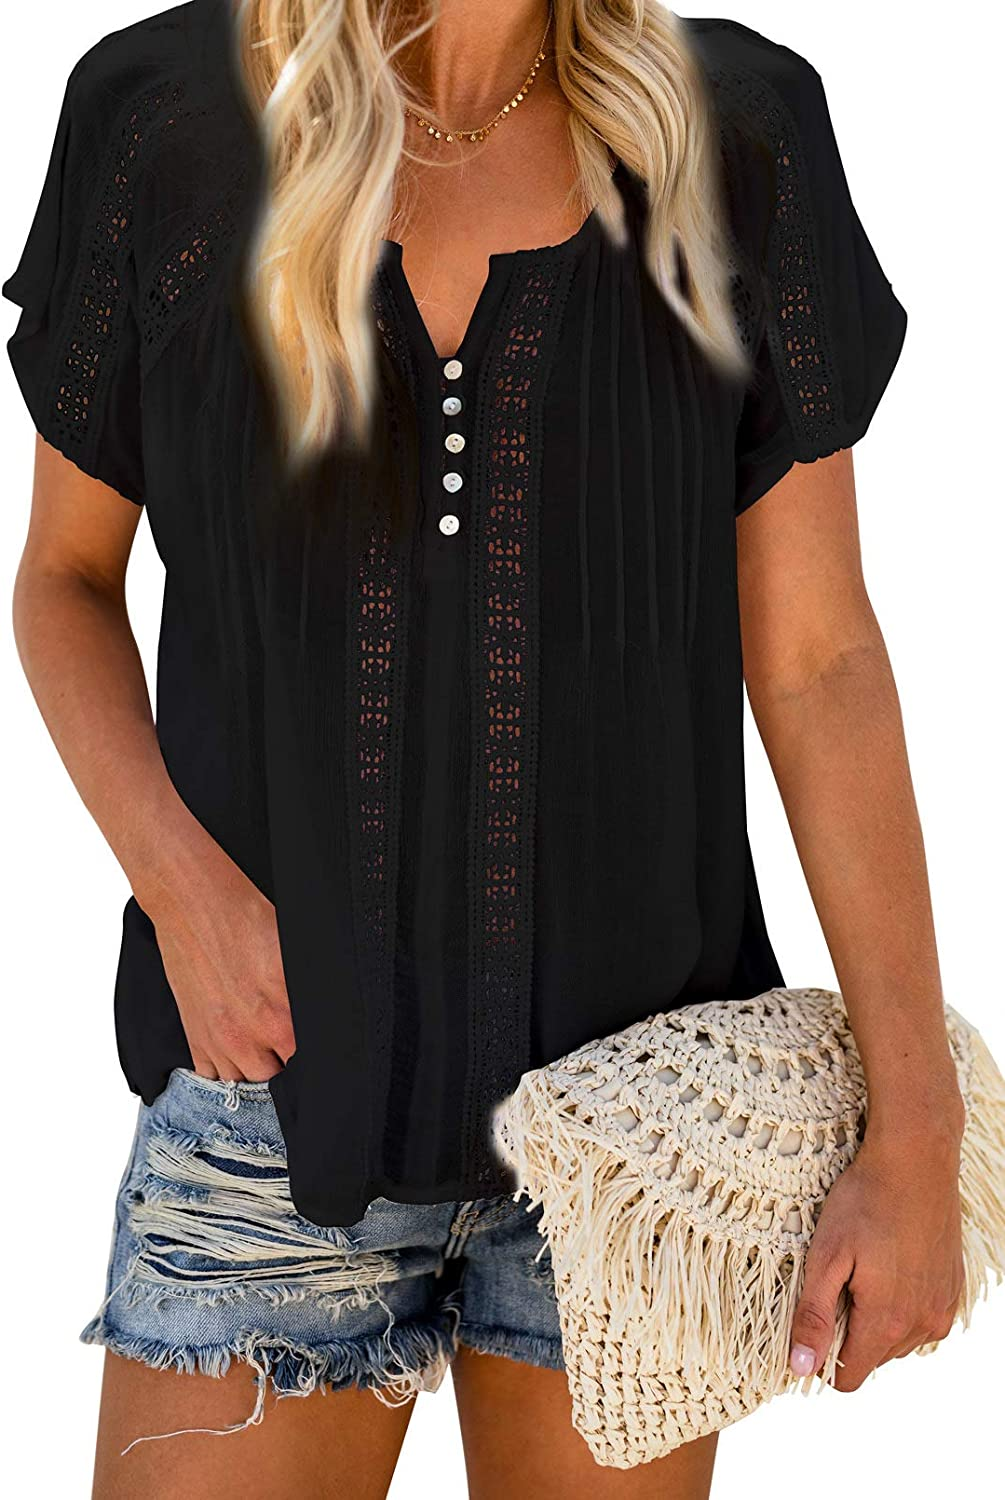 Biucly Womens Casual Button-Down Shirts V Neck Lace Crochet Blouses Tops